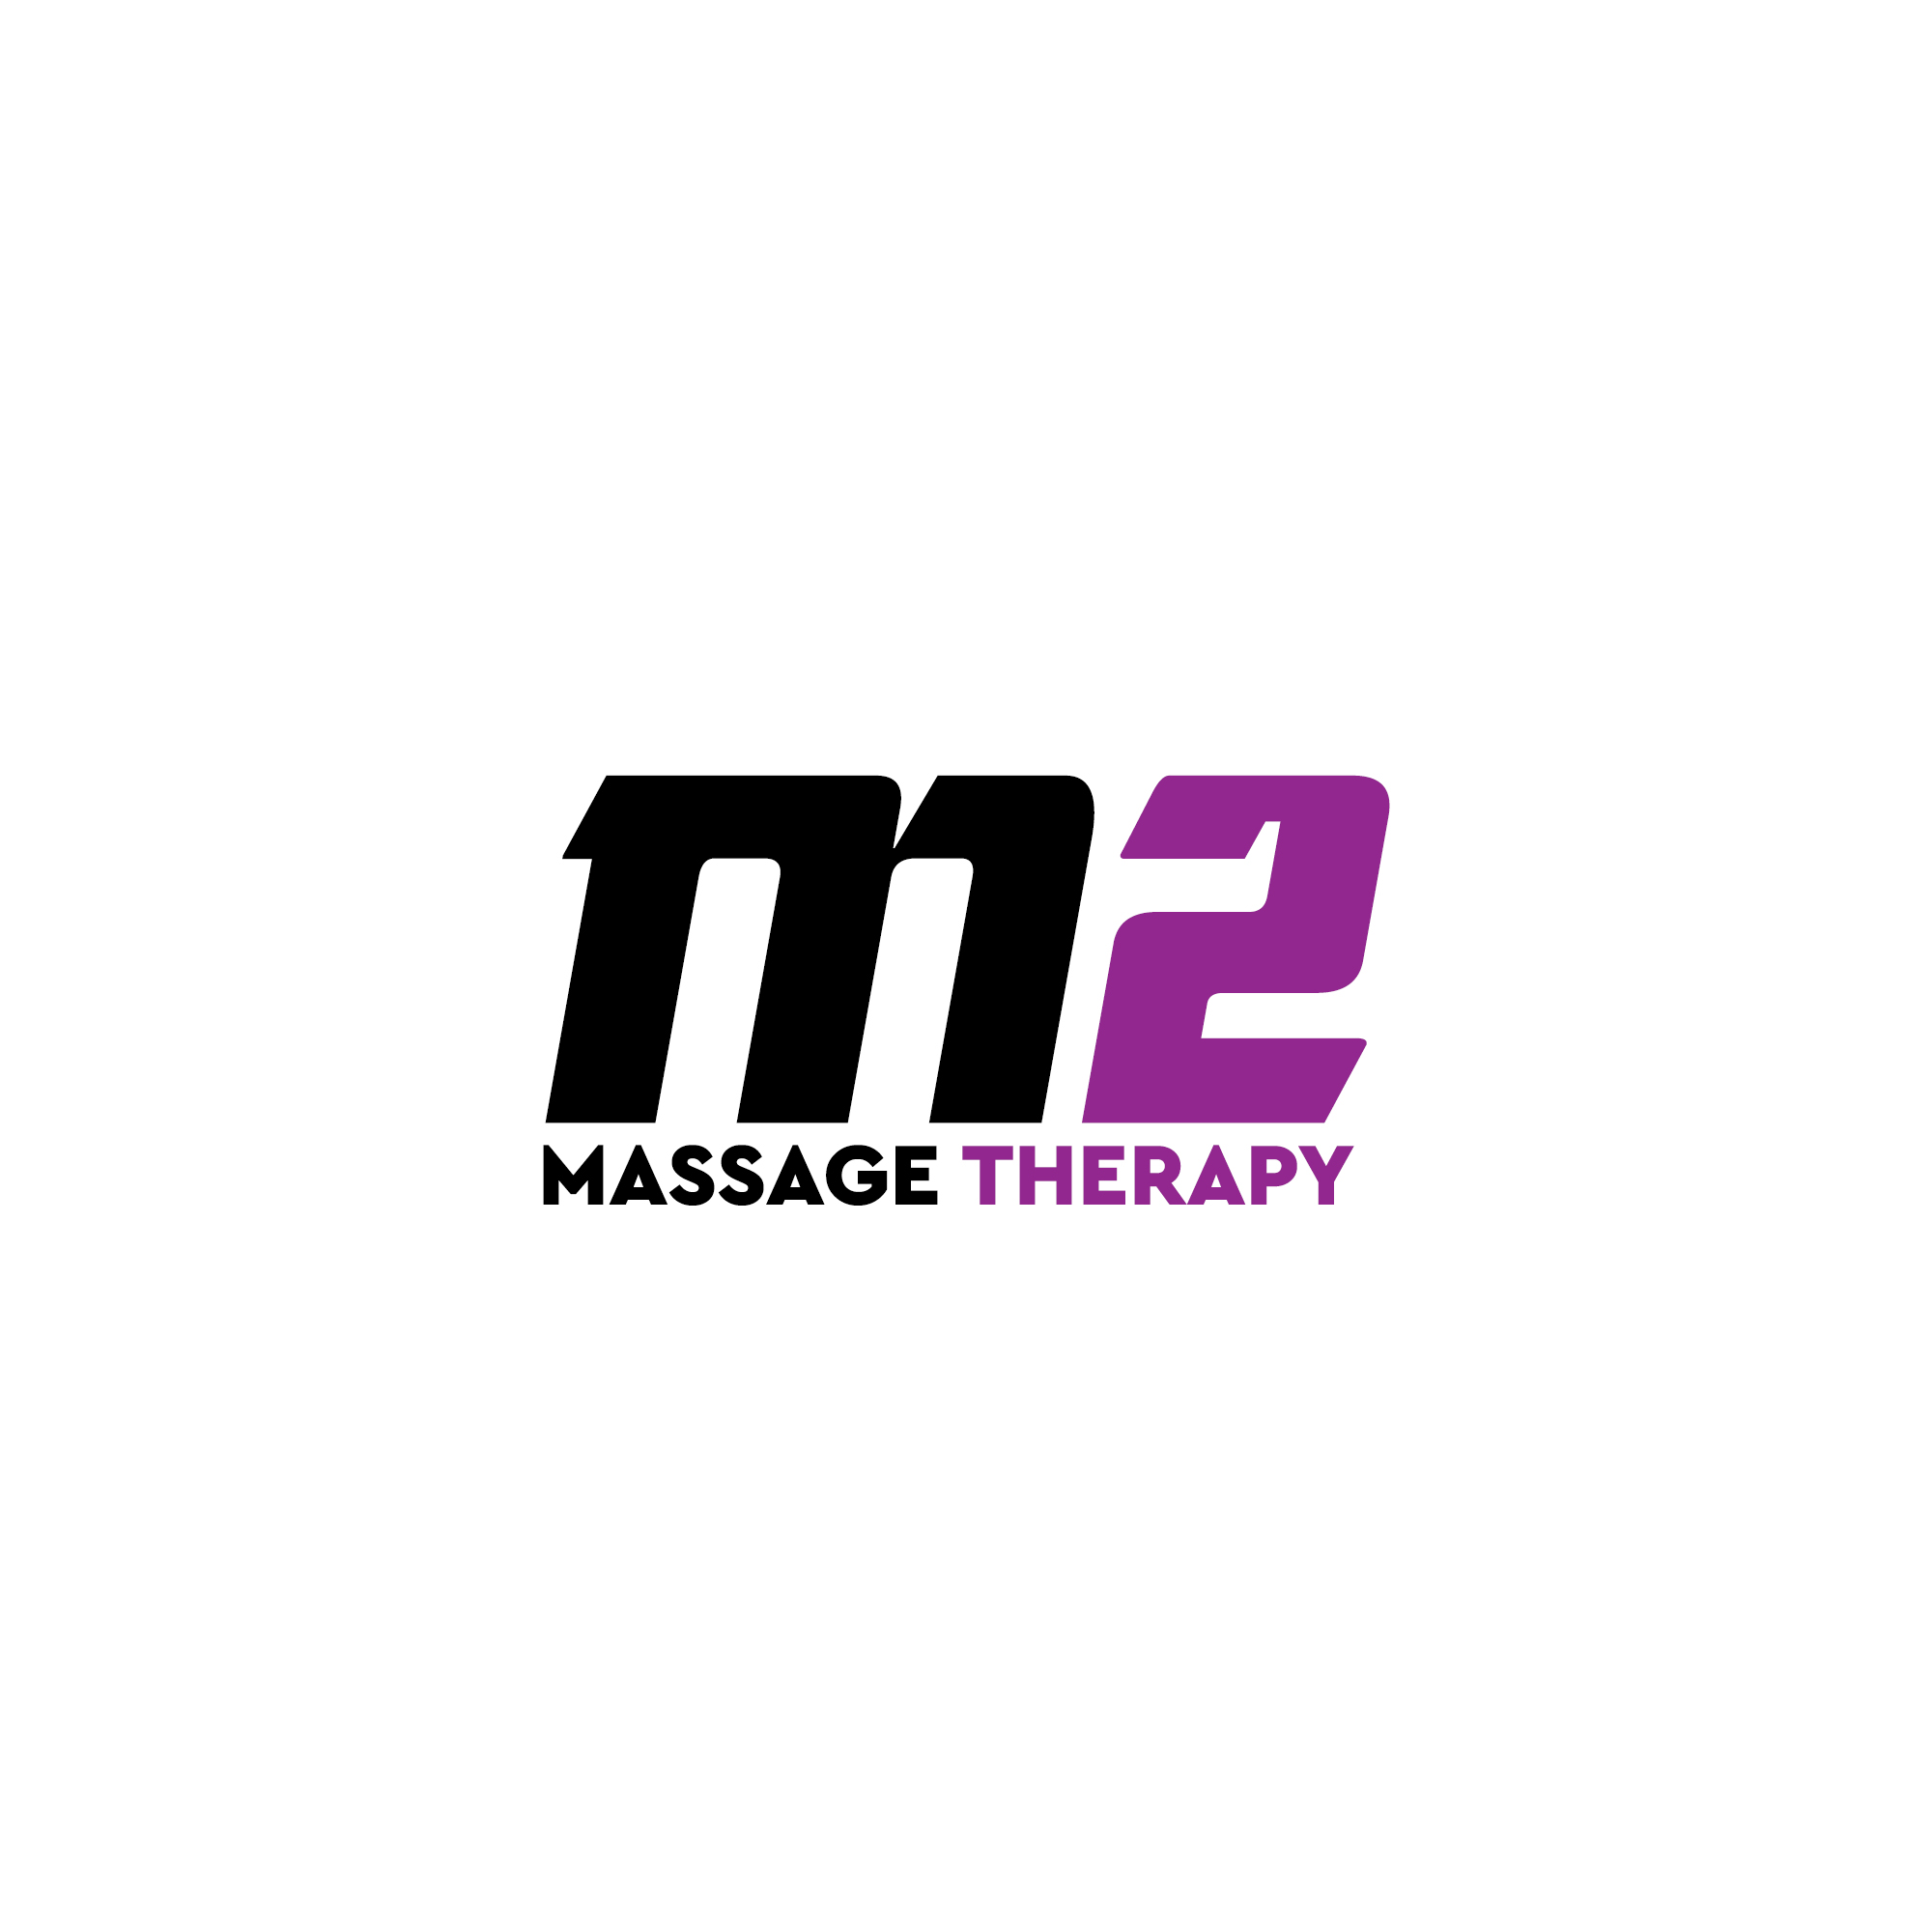 M2 Massage Therapy